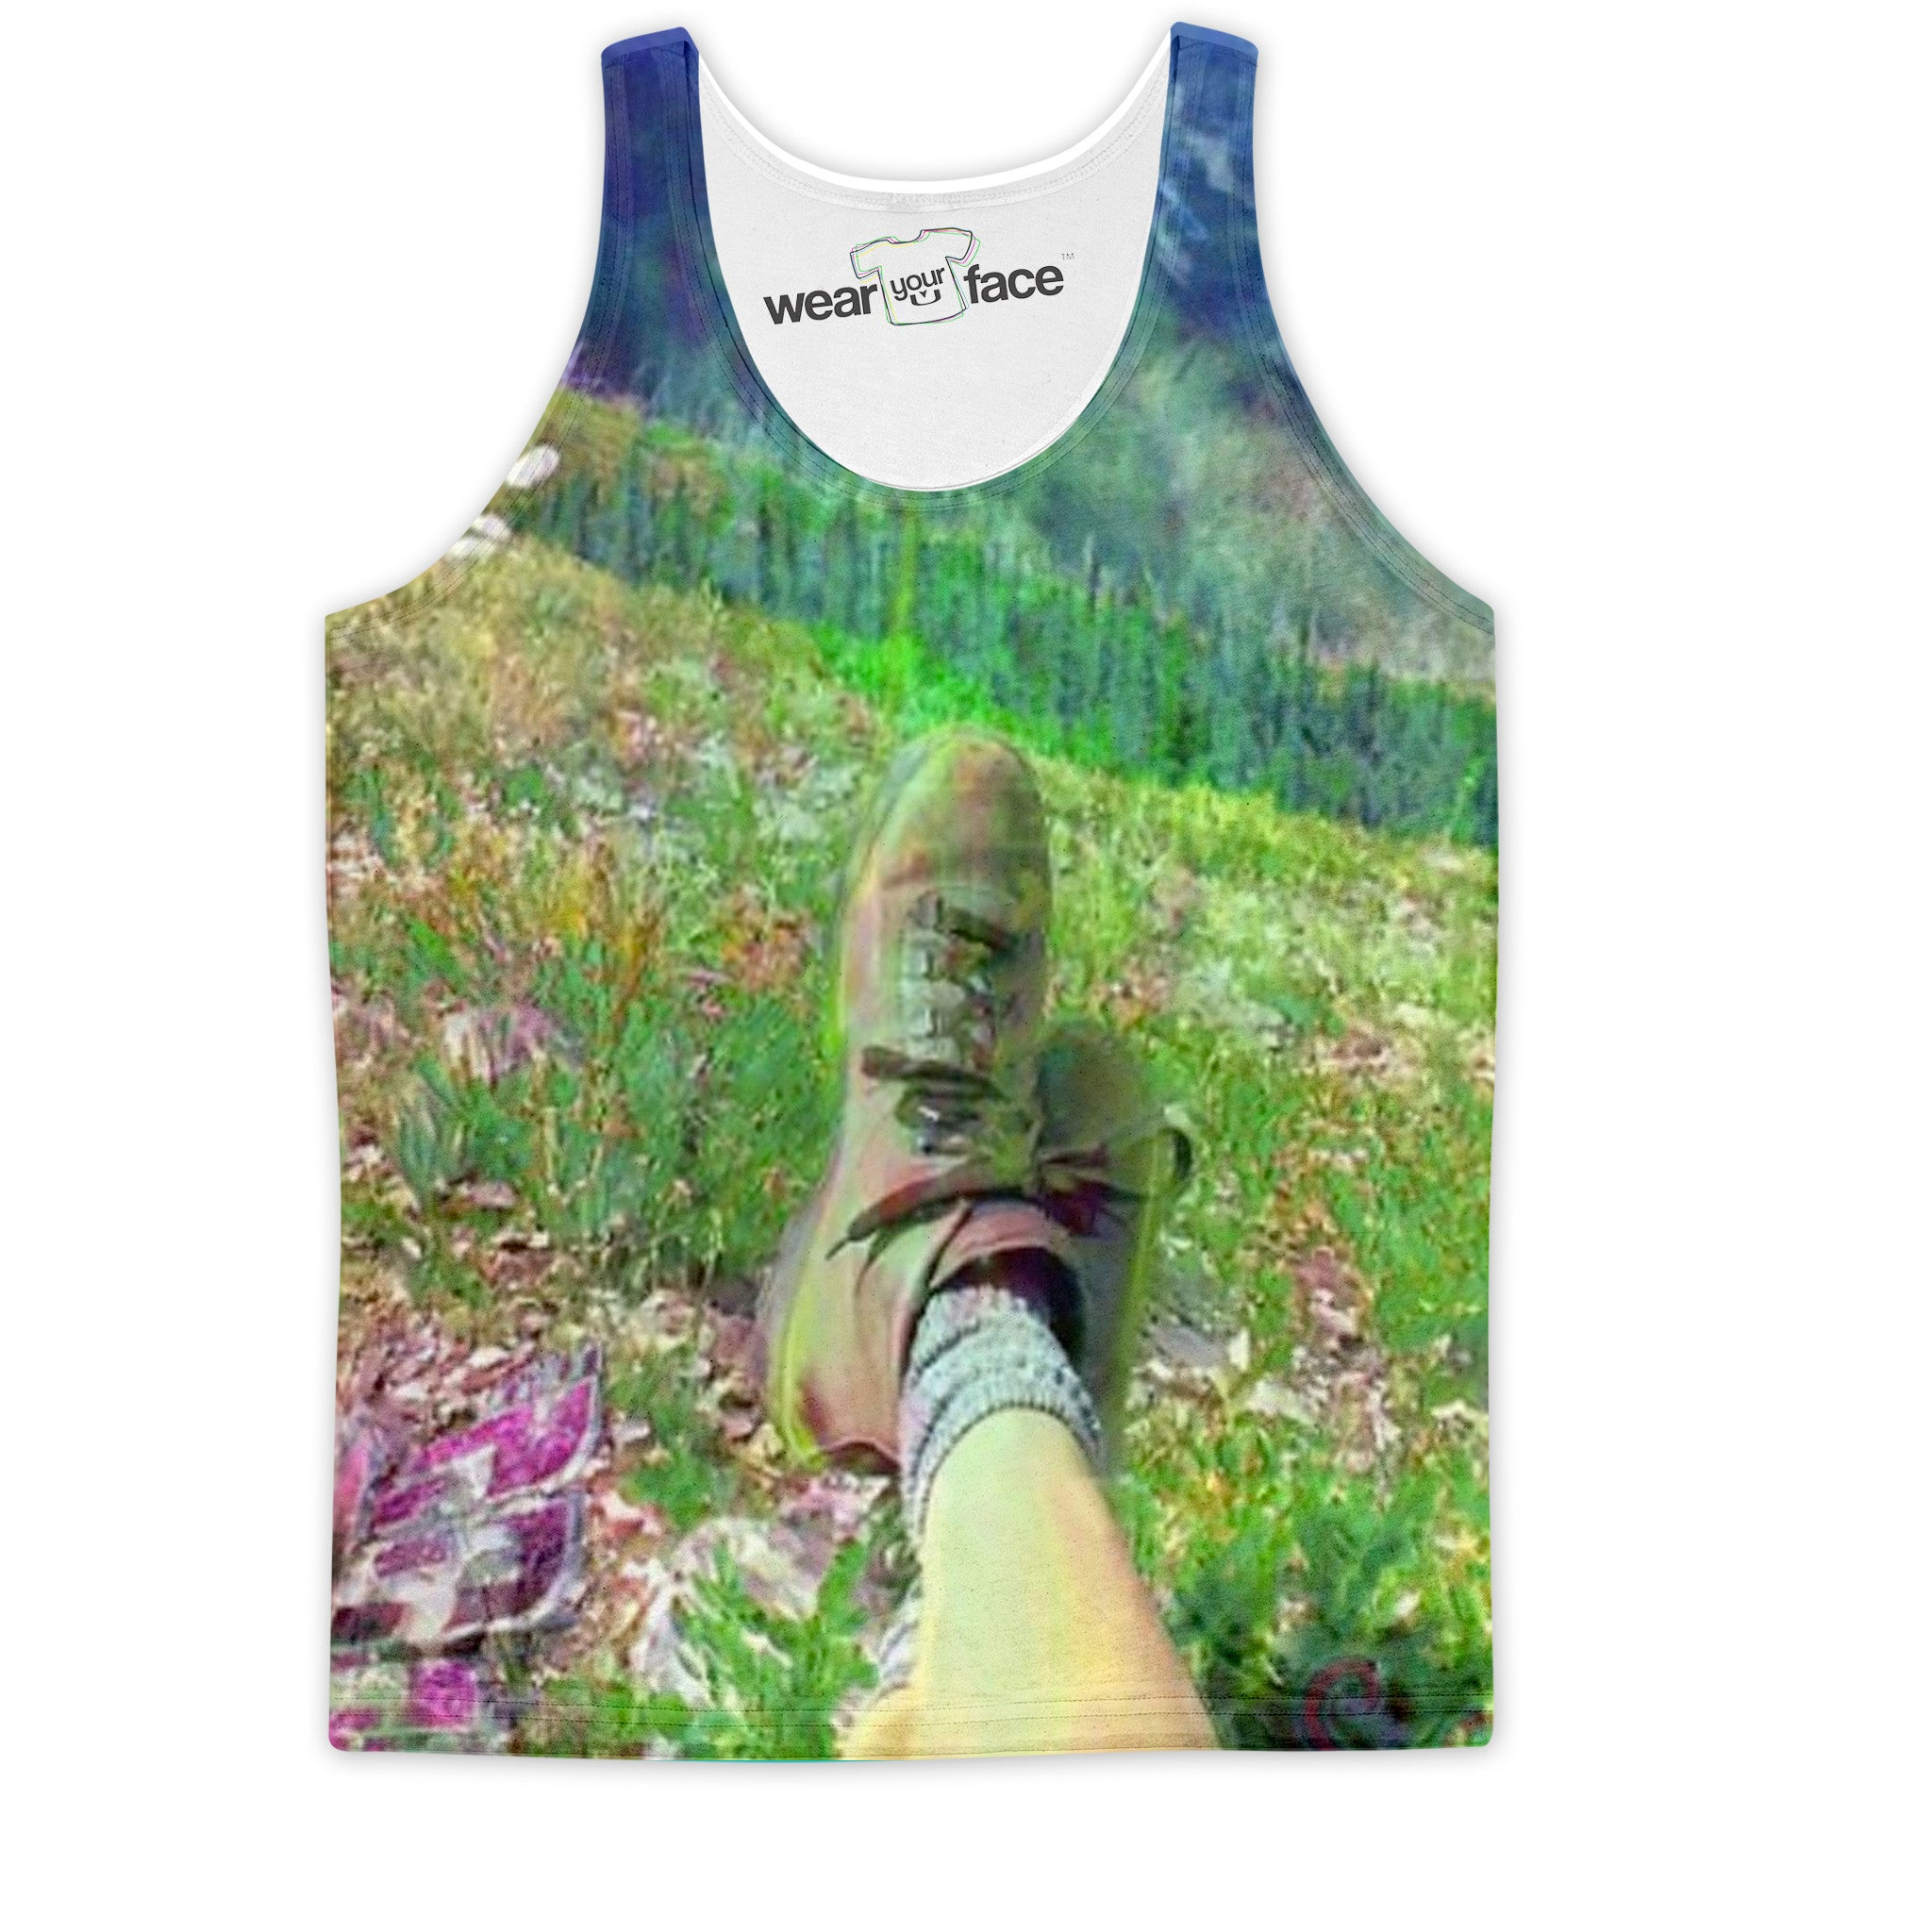 Field of Dreams Tank